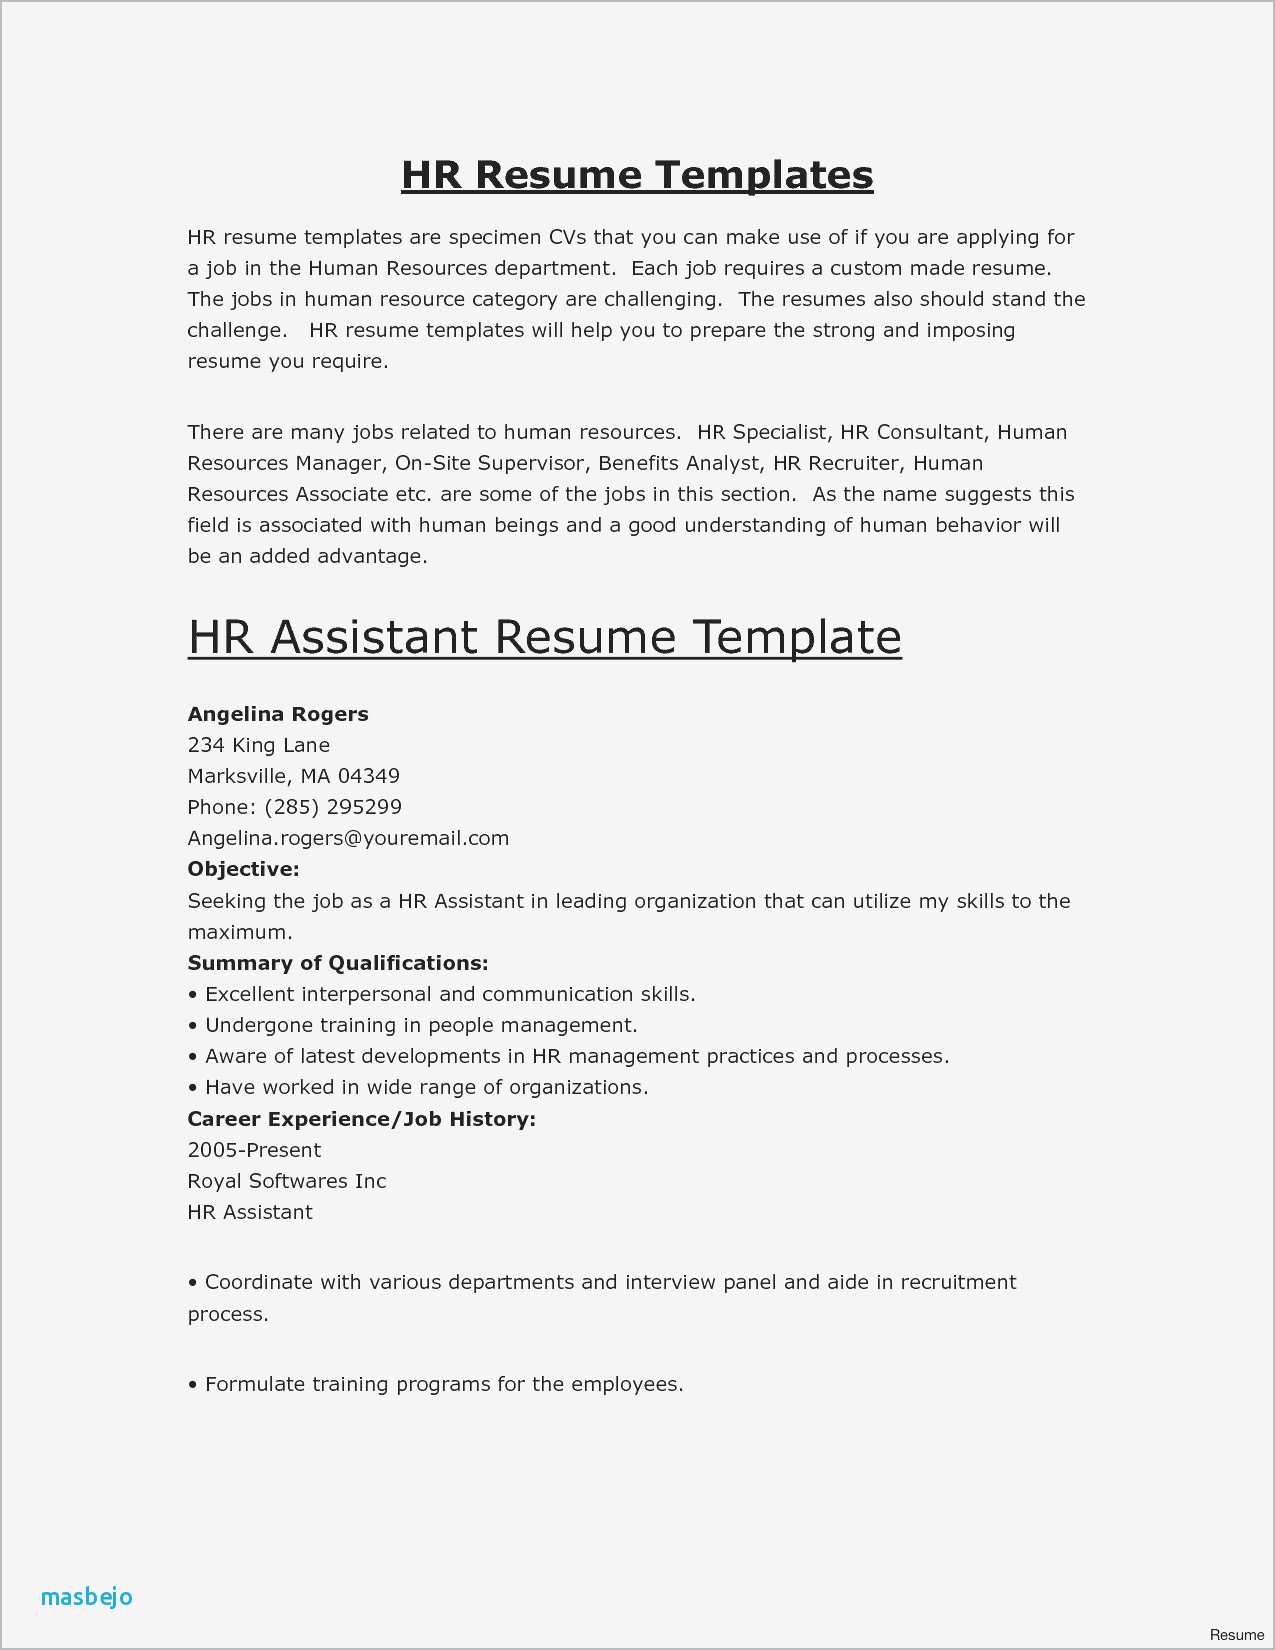 Advertising Resume Template - Advertising Resume Examples Resume Objective for Medical assistant